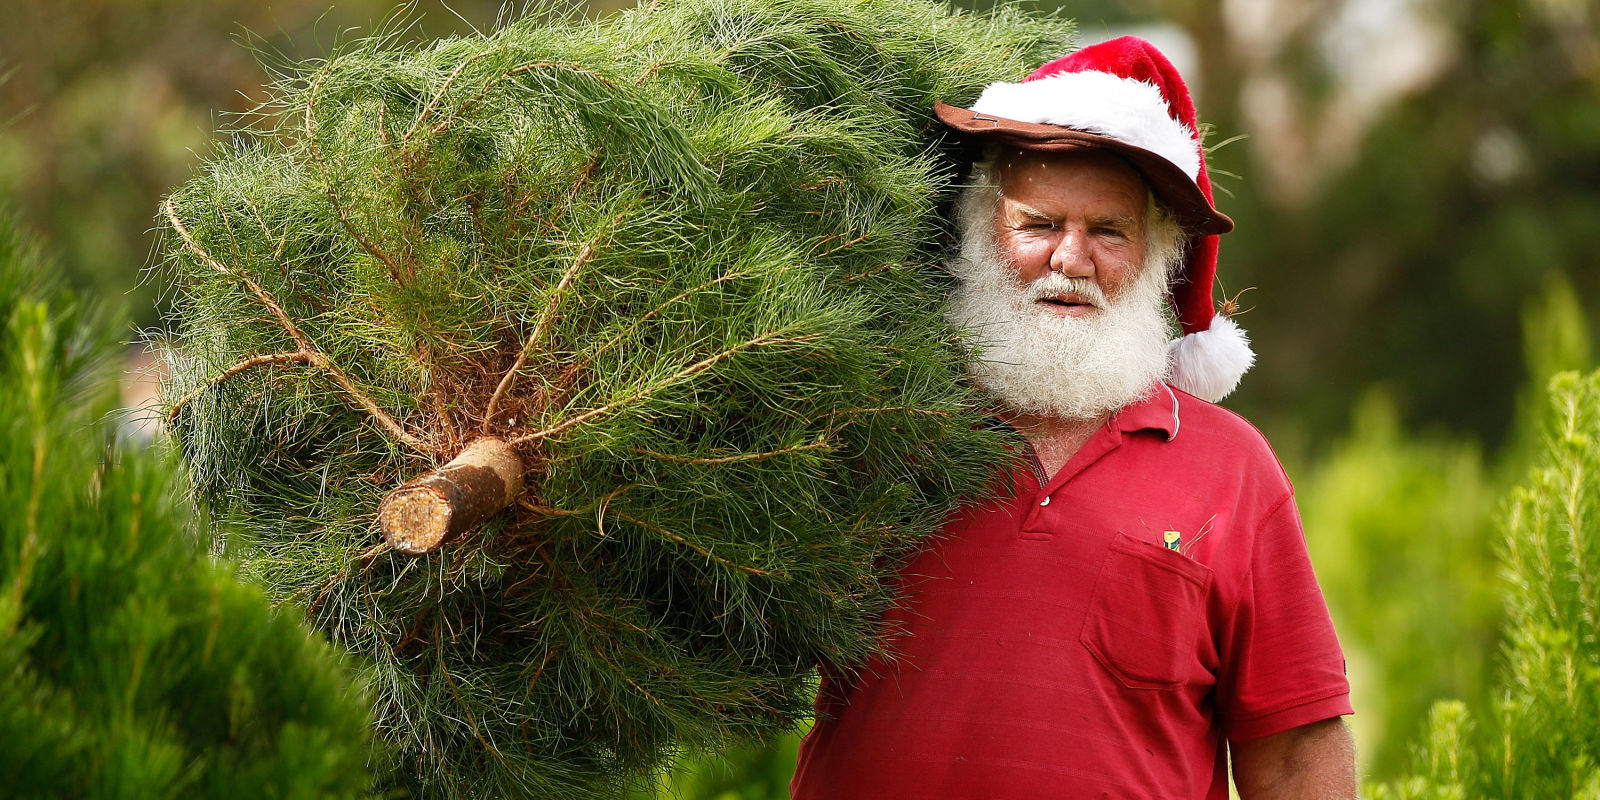 Christmas Tree Delivery And Decorating Service